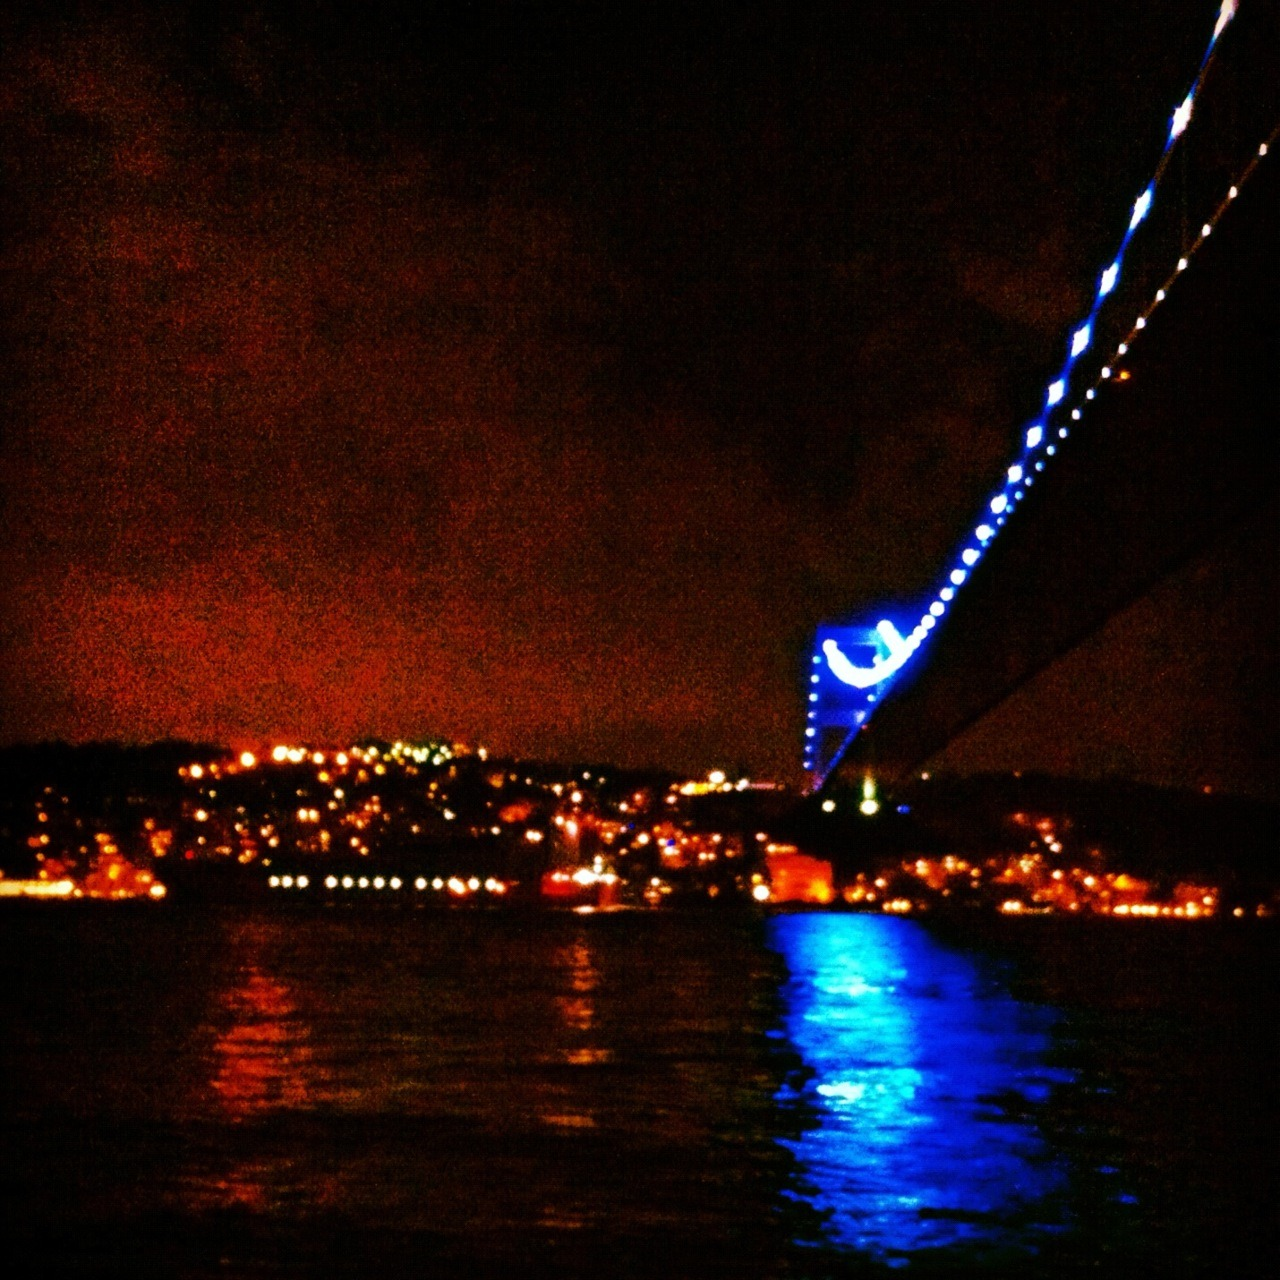 Anadolu Kavagi at night.